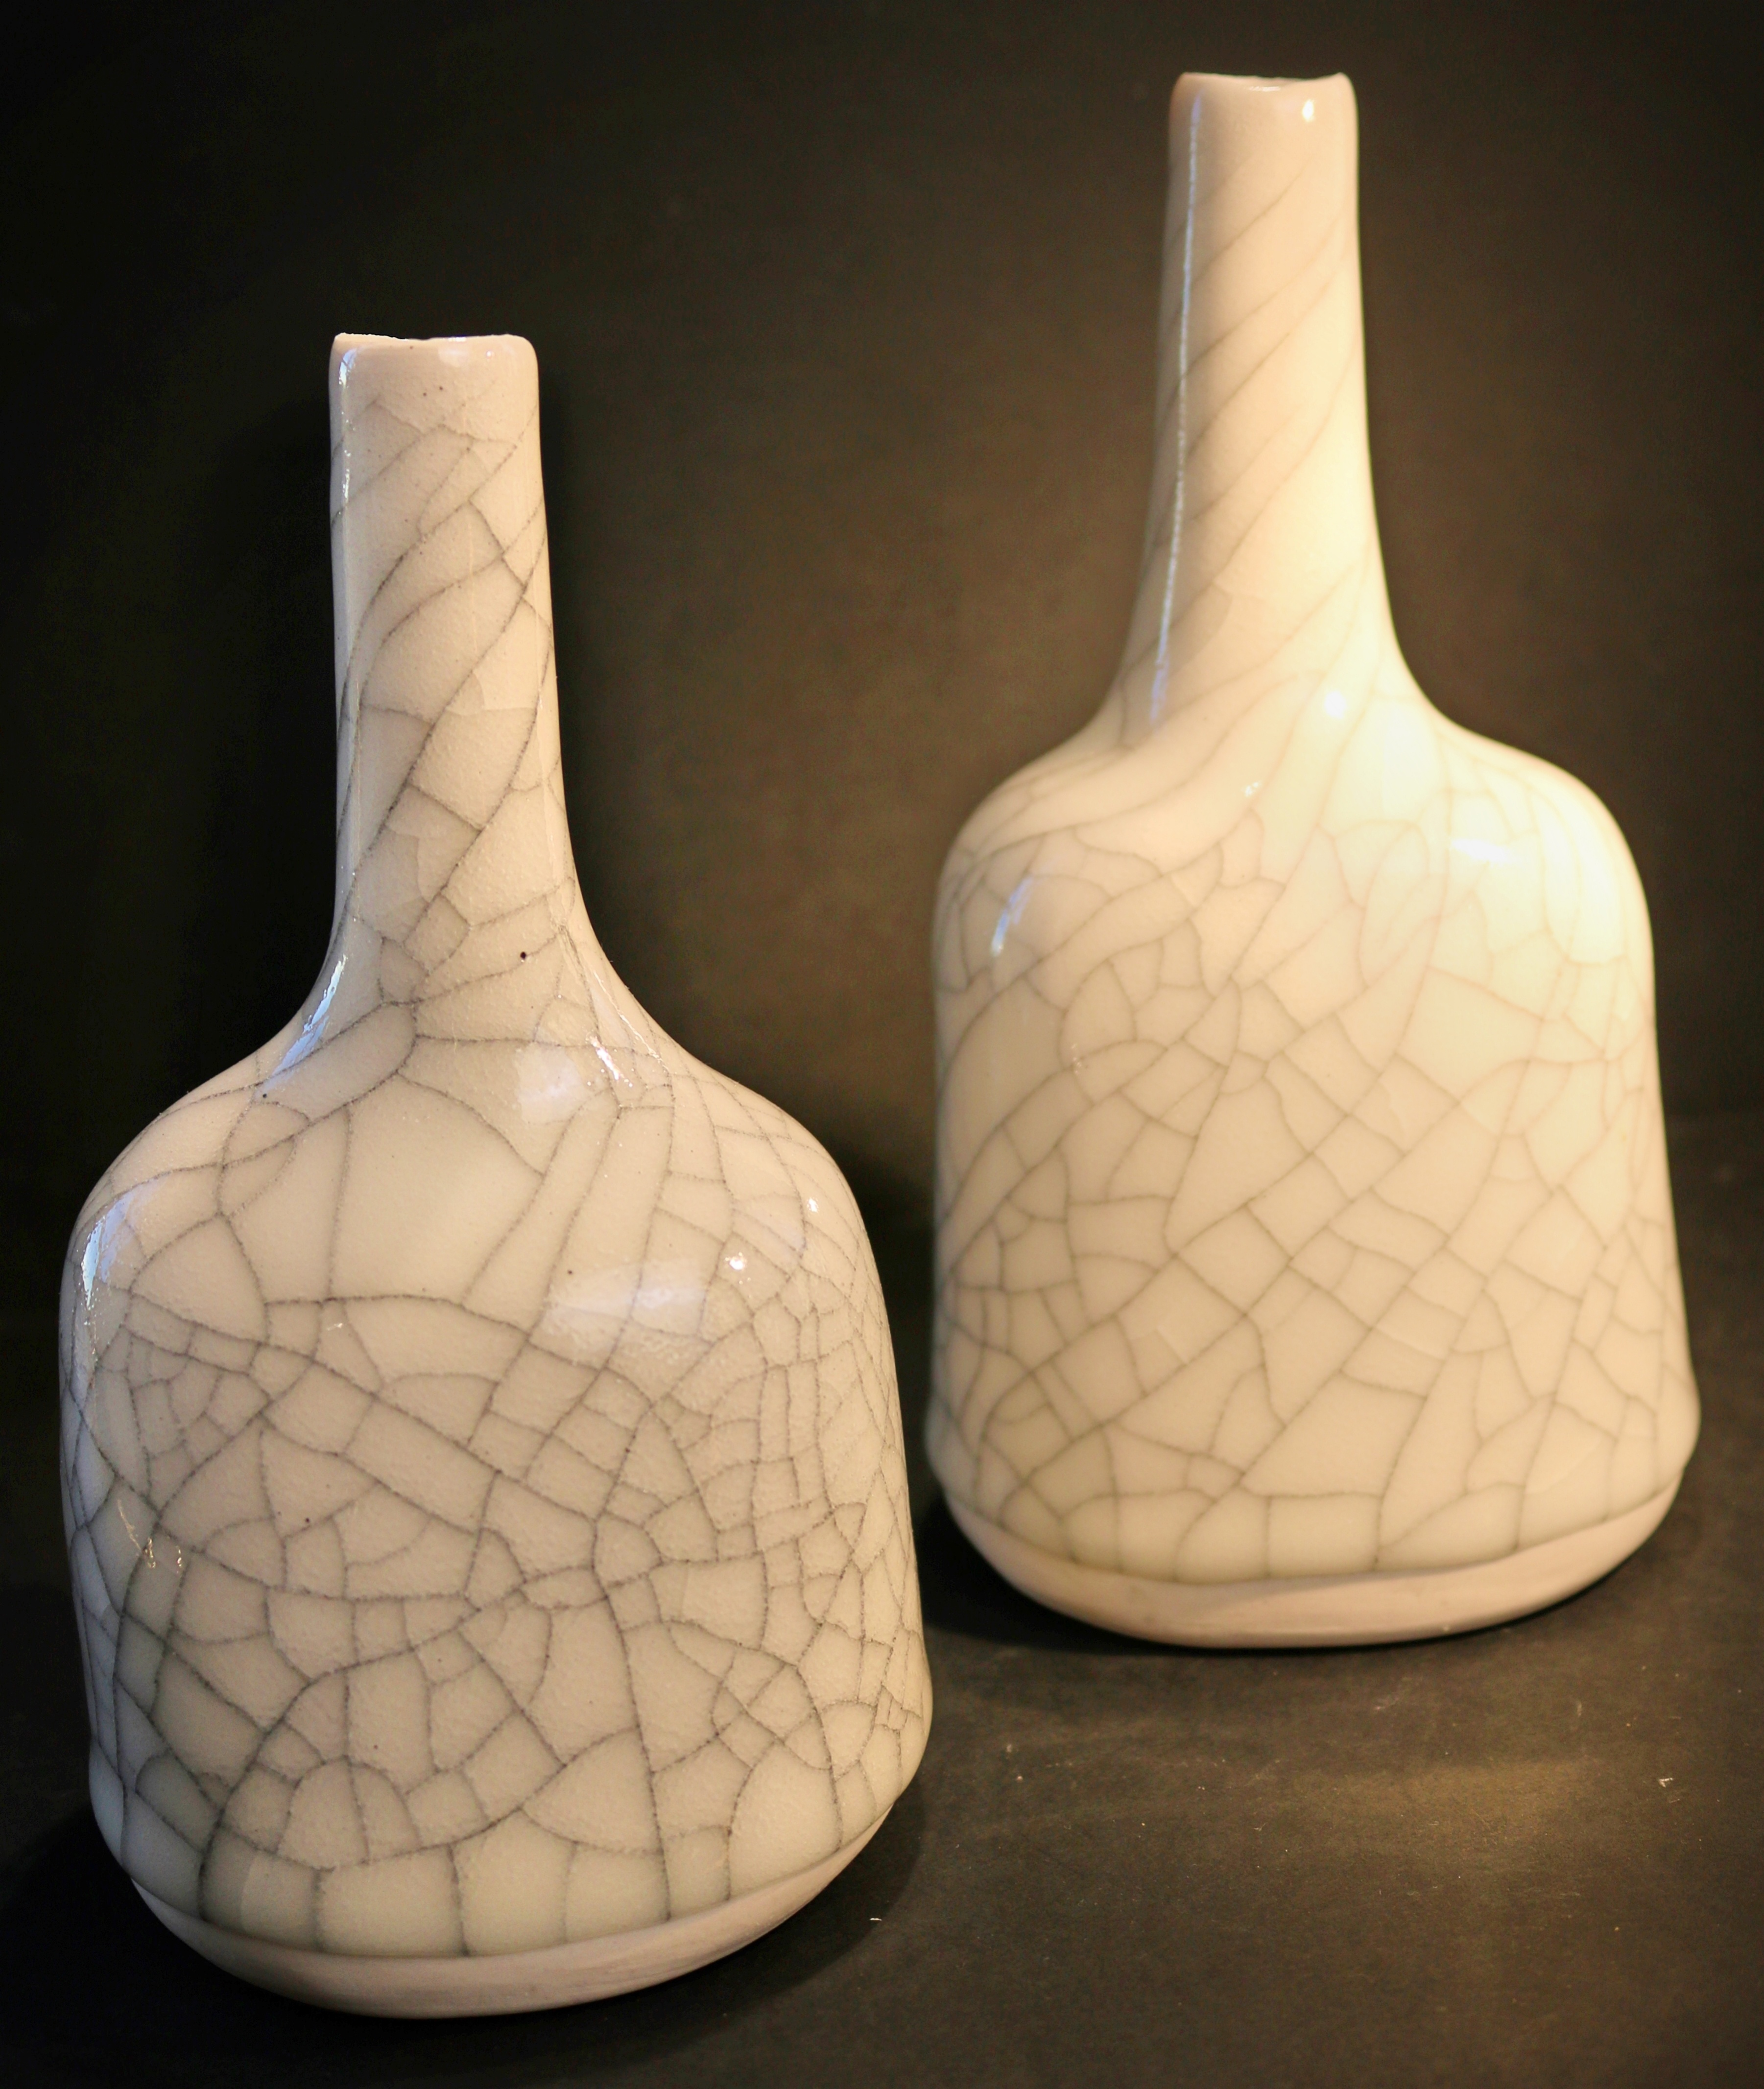 https://0501.nccdn.net/4_2/000/000/064/d40/porcelain-crackle-2-pots--4-3602x4266.jpg